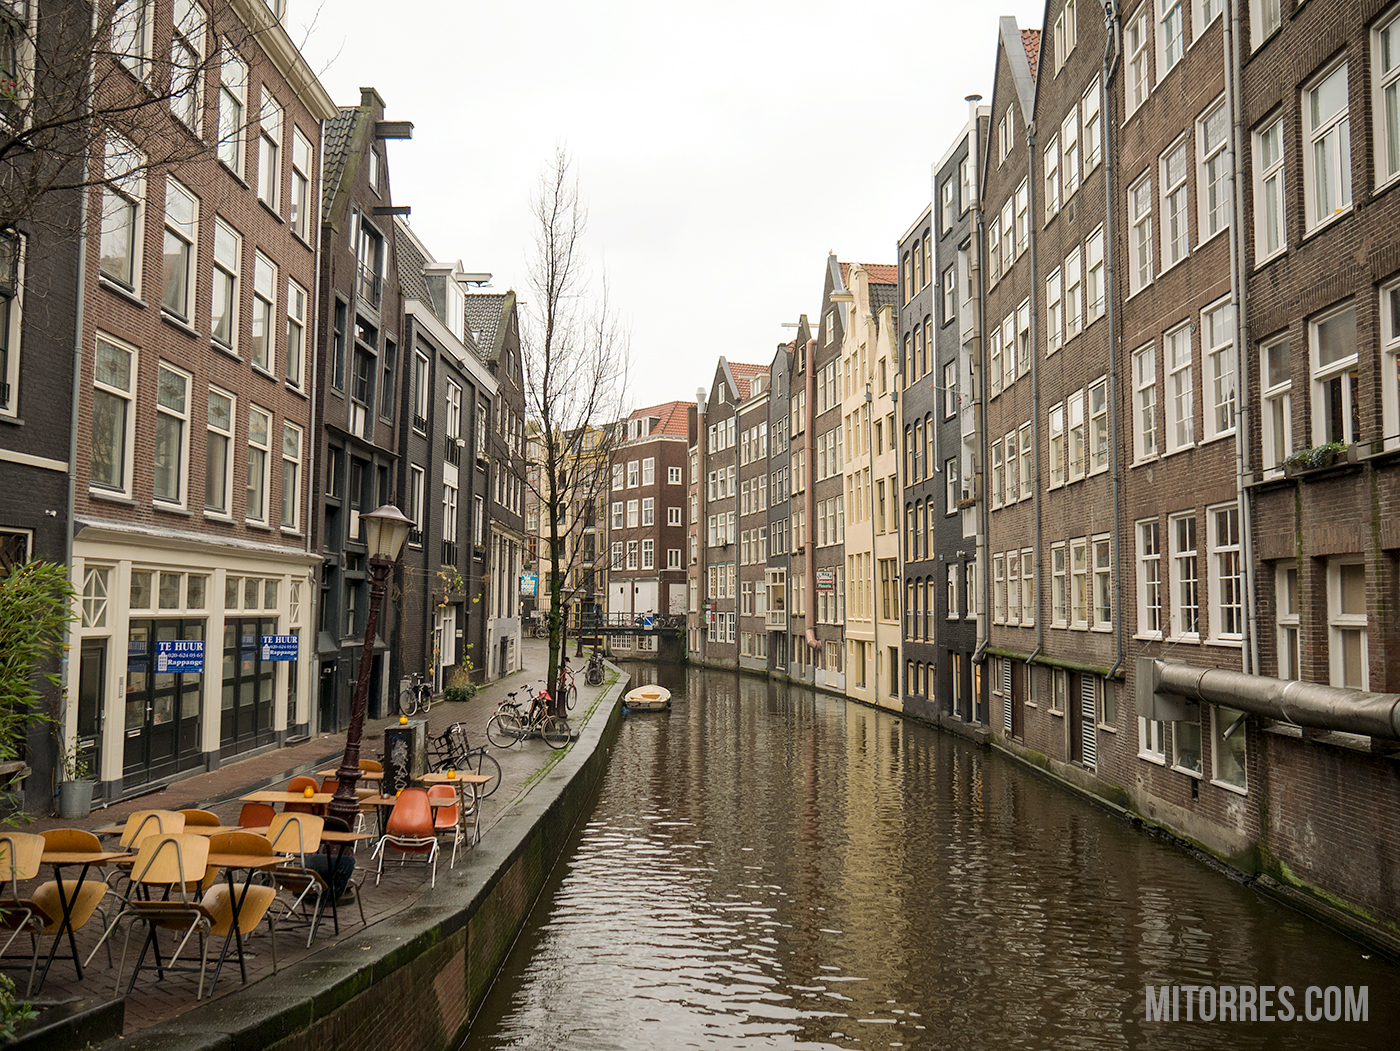 One of many canals in Amsterdam.